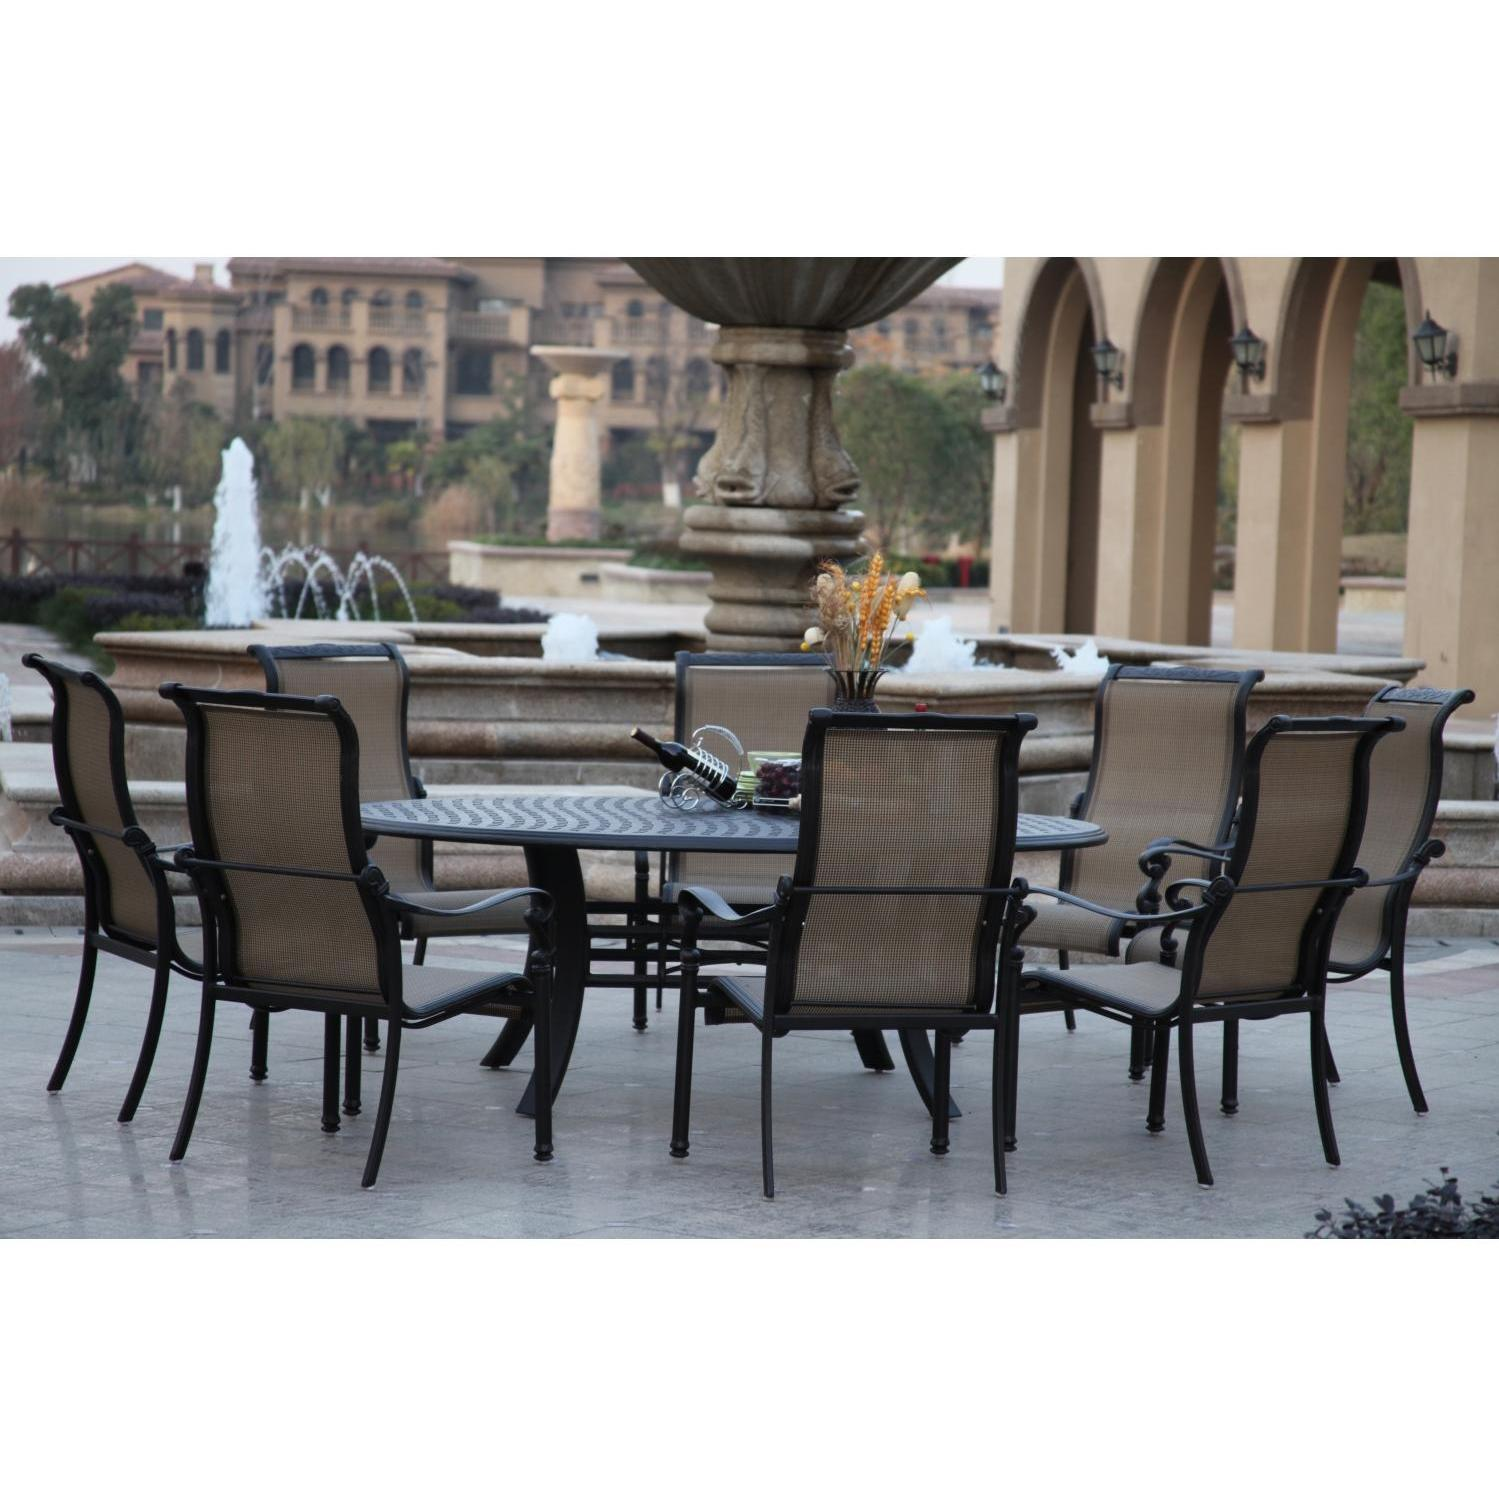 patio dining sets for 8 photo - 10